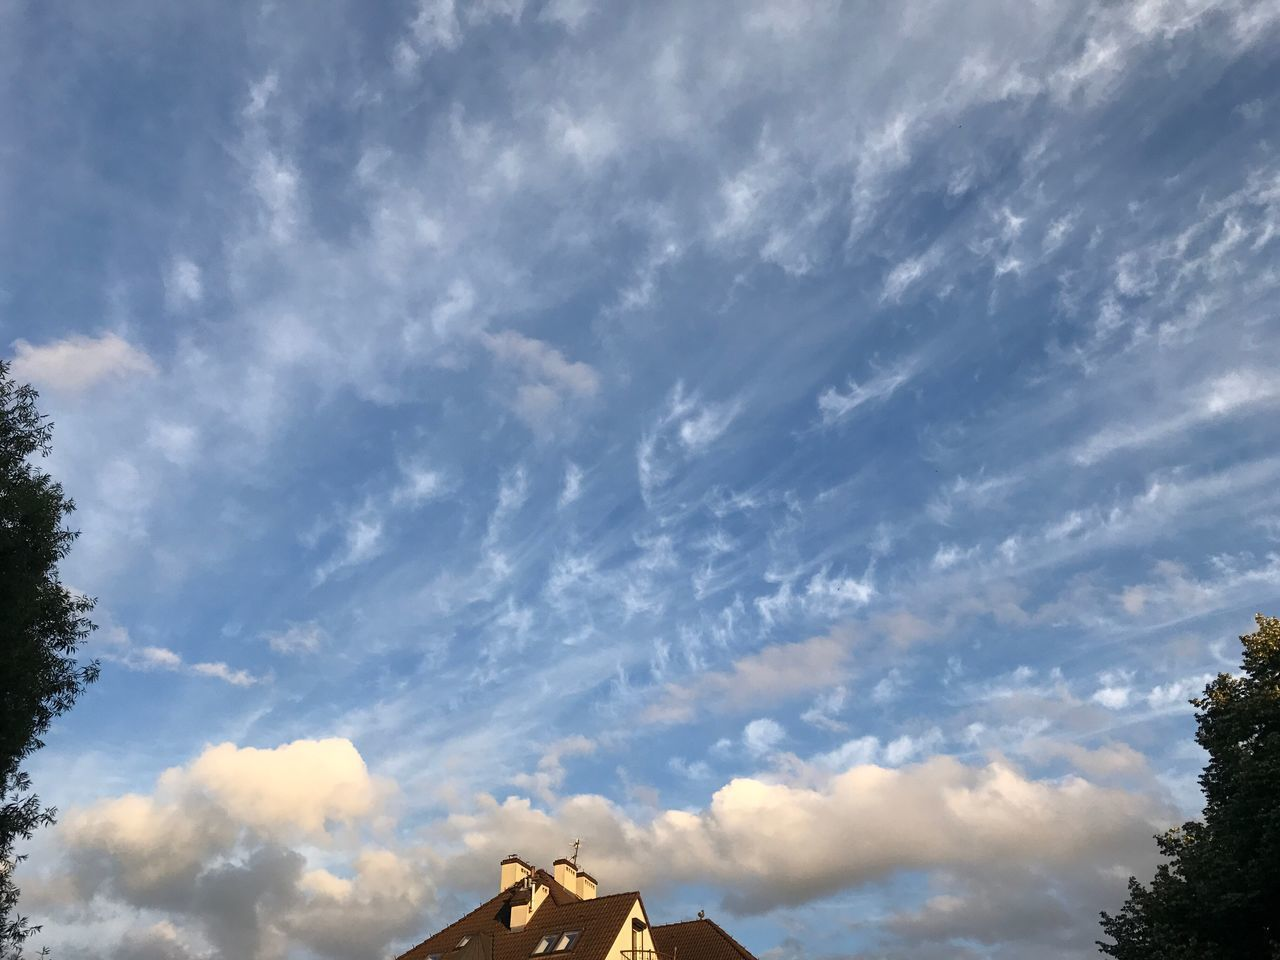 cloud - sky, sky, low angle view, outdoors, day, no people, architecture, nature, built structure, beauty in nature, scenics, building exterior, tree